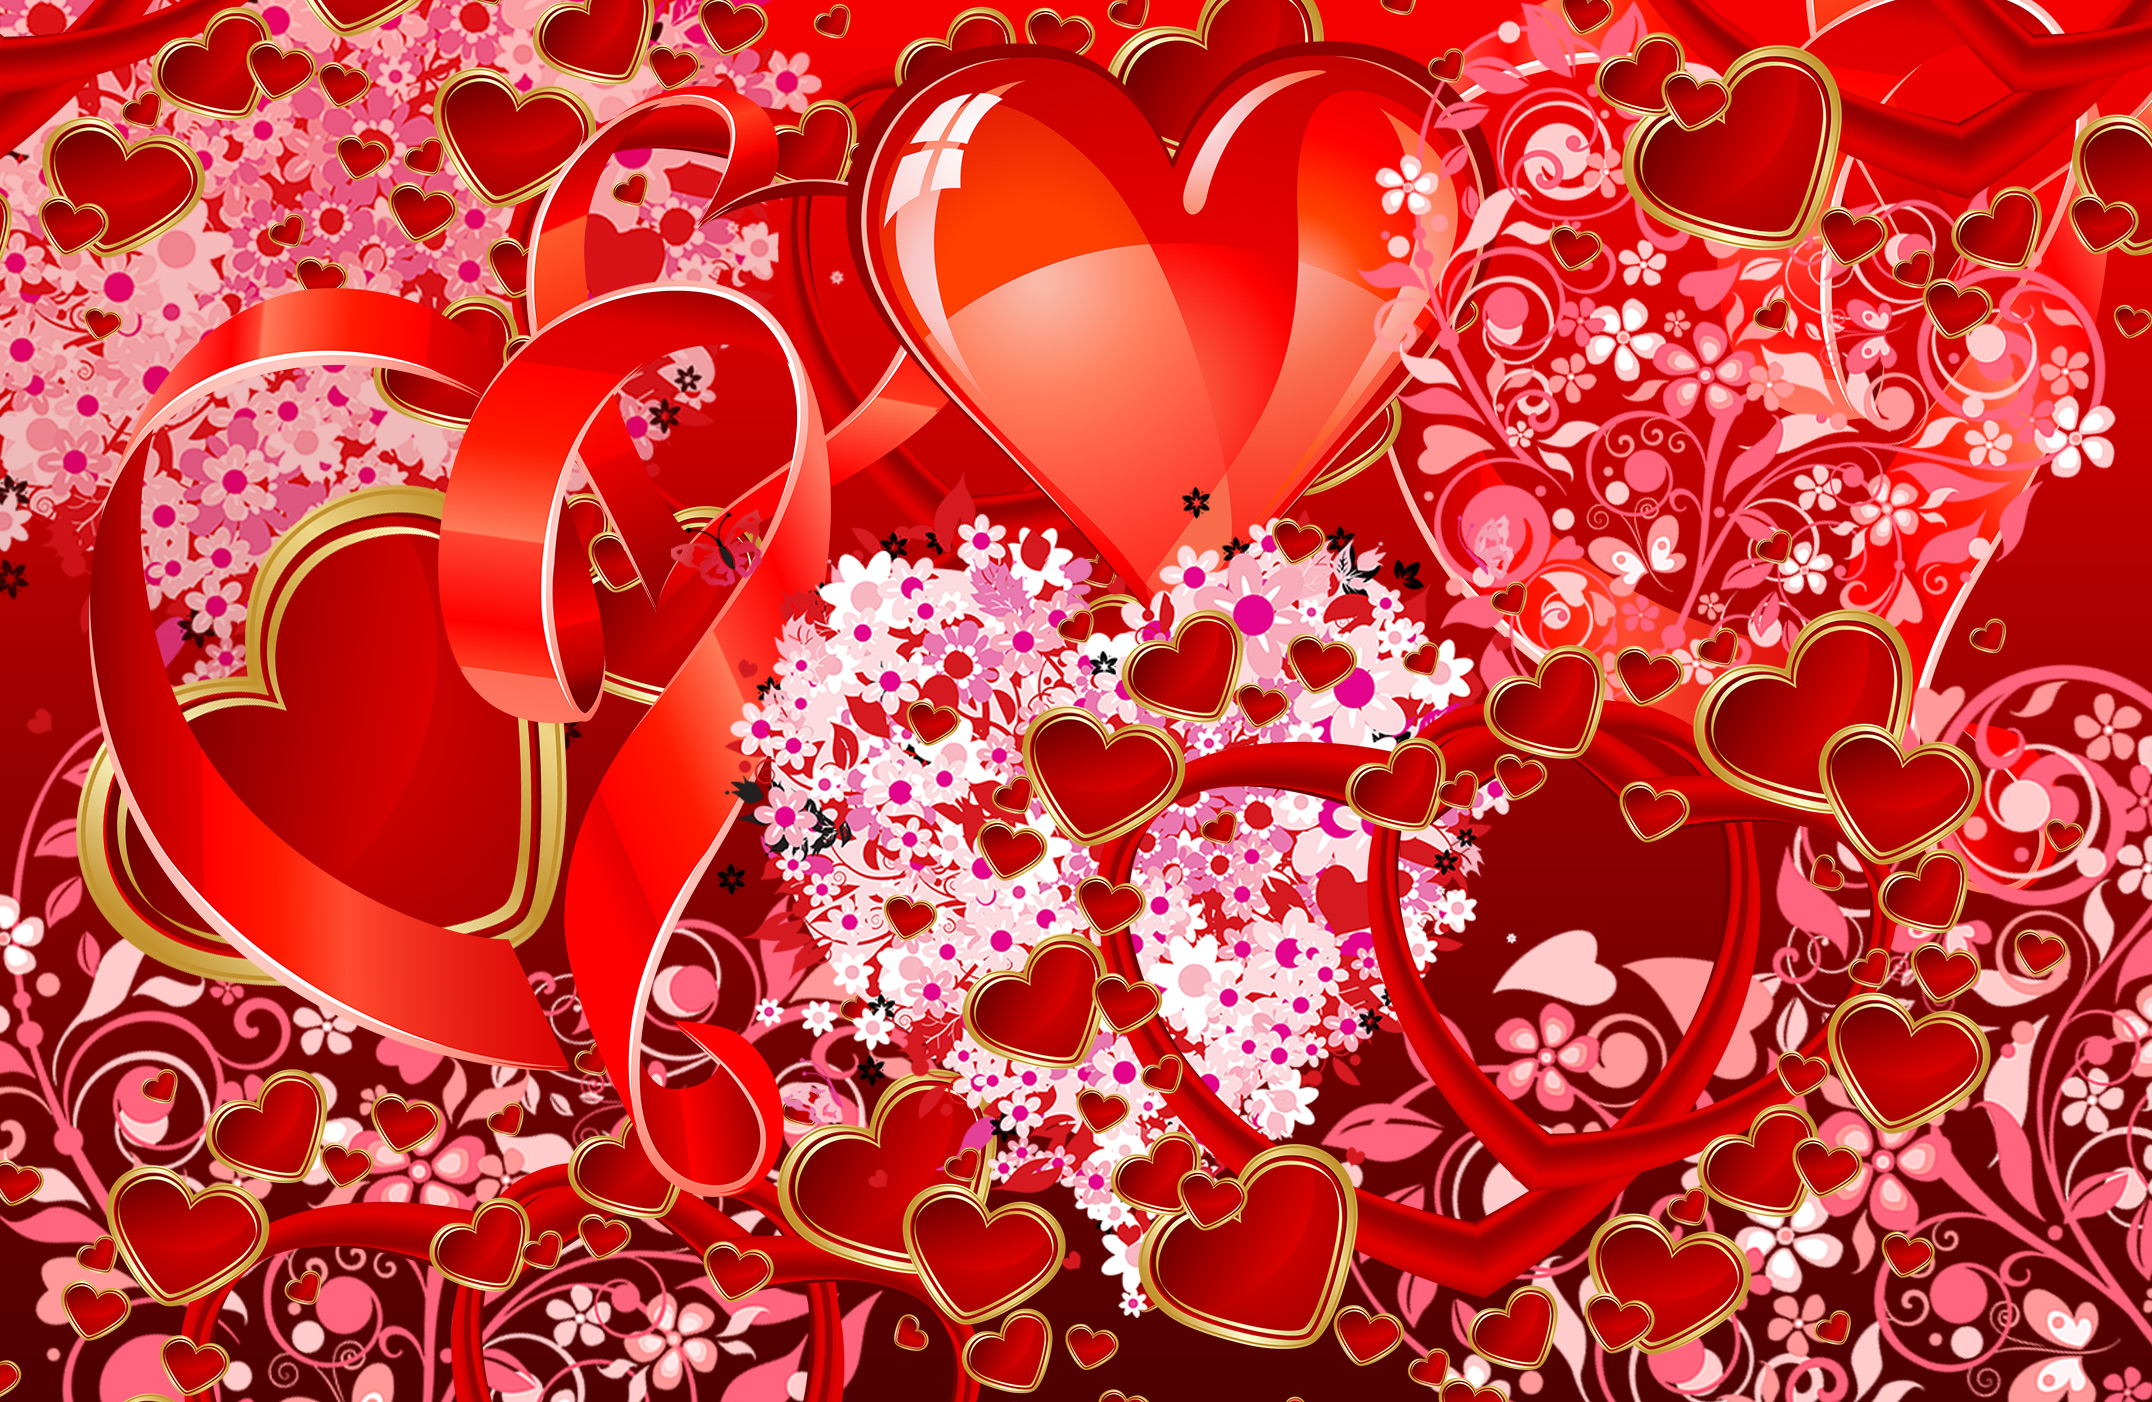 Valentines day wallpapers high quality download free - Valentines day background wallpaper ...